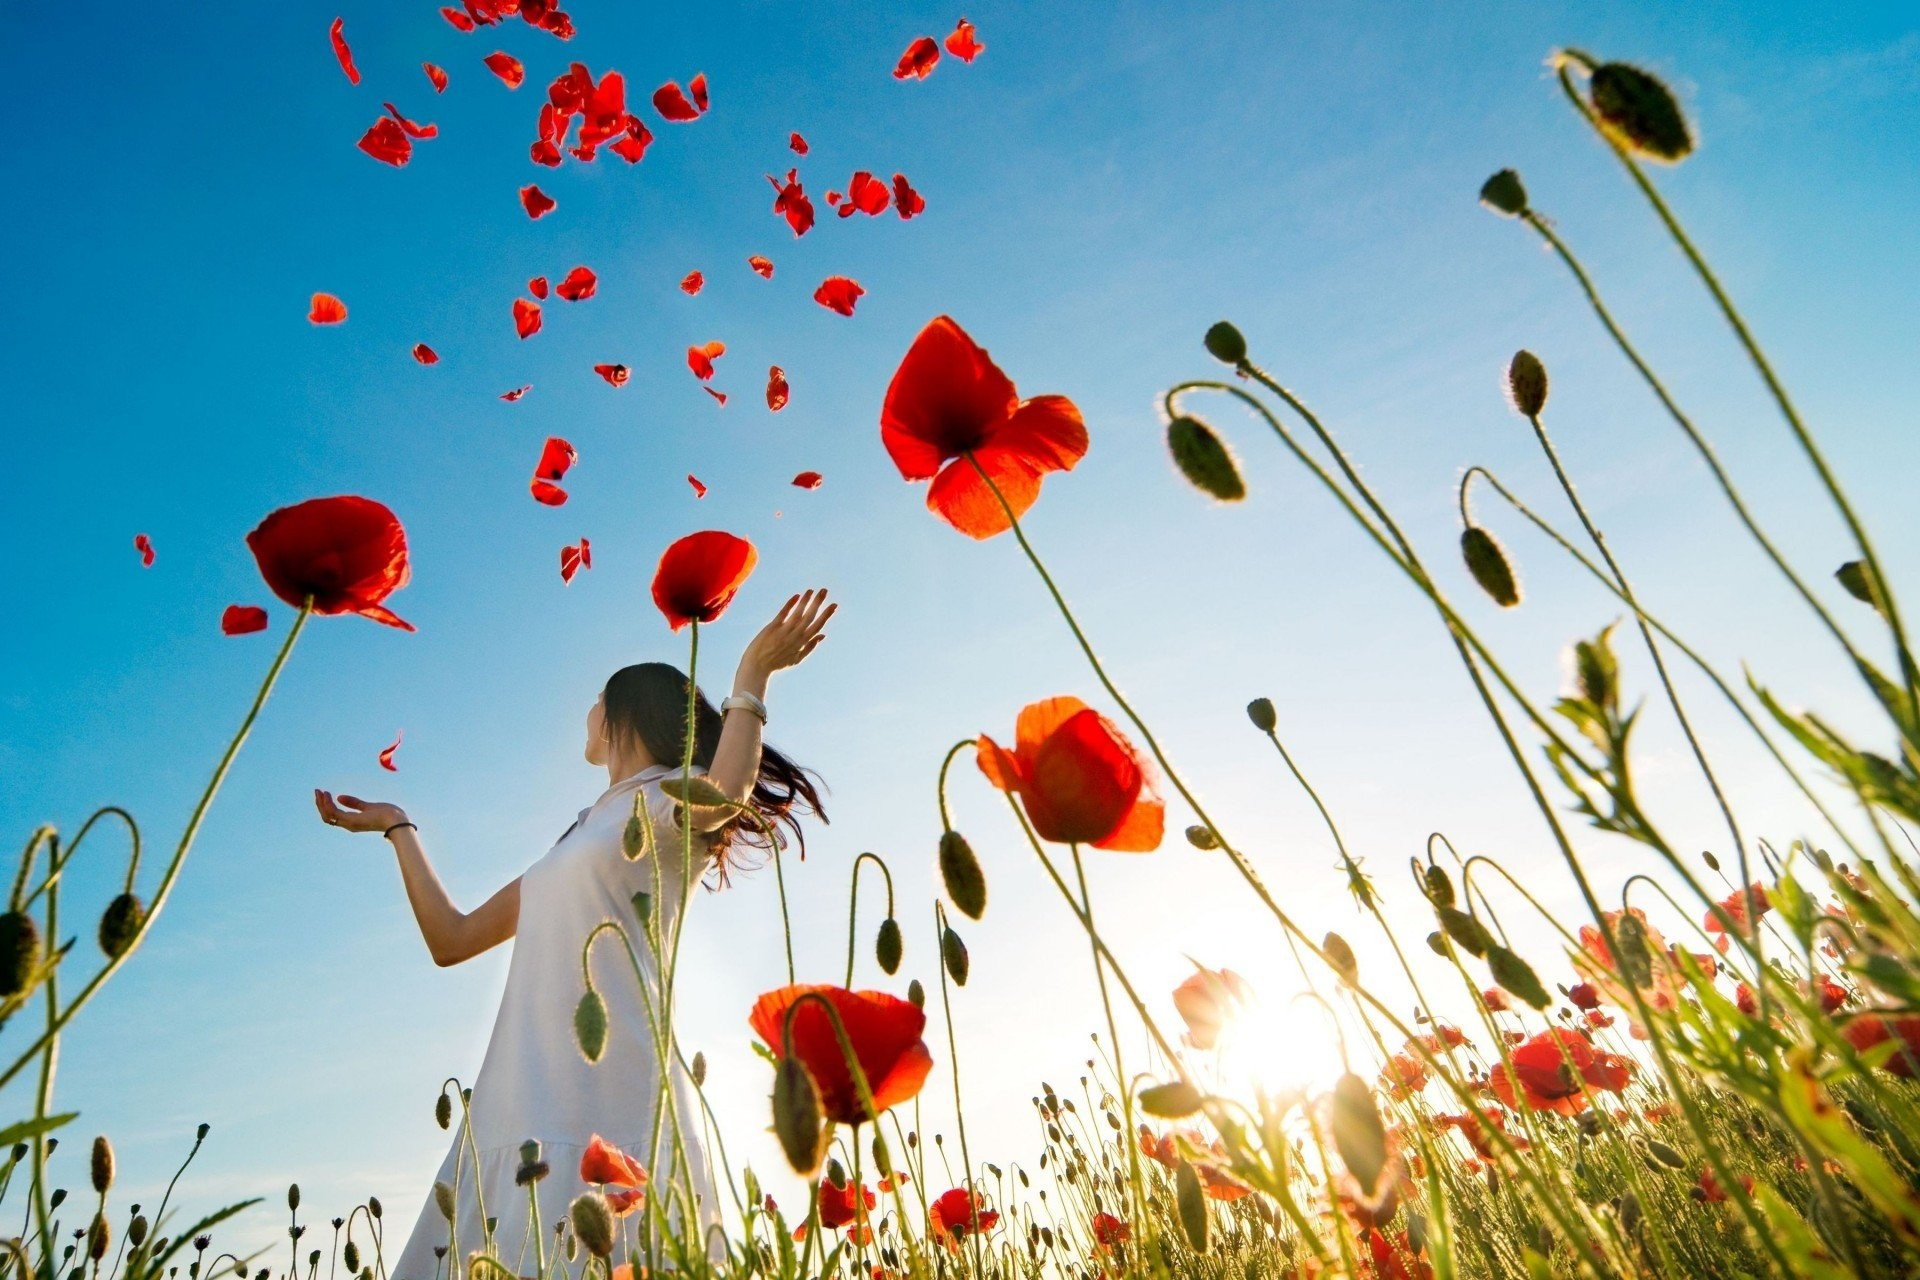 1920x1280 flower full screen widescreen girl mood poppy background wallpaper brunette  poppies plants close up the field